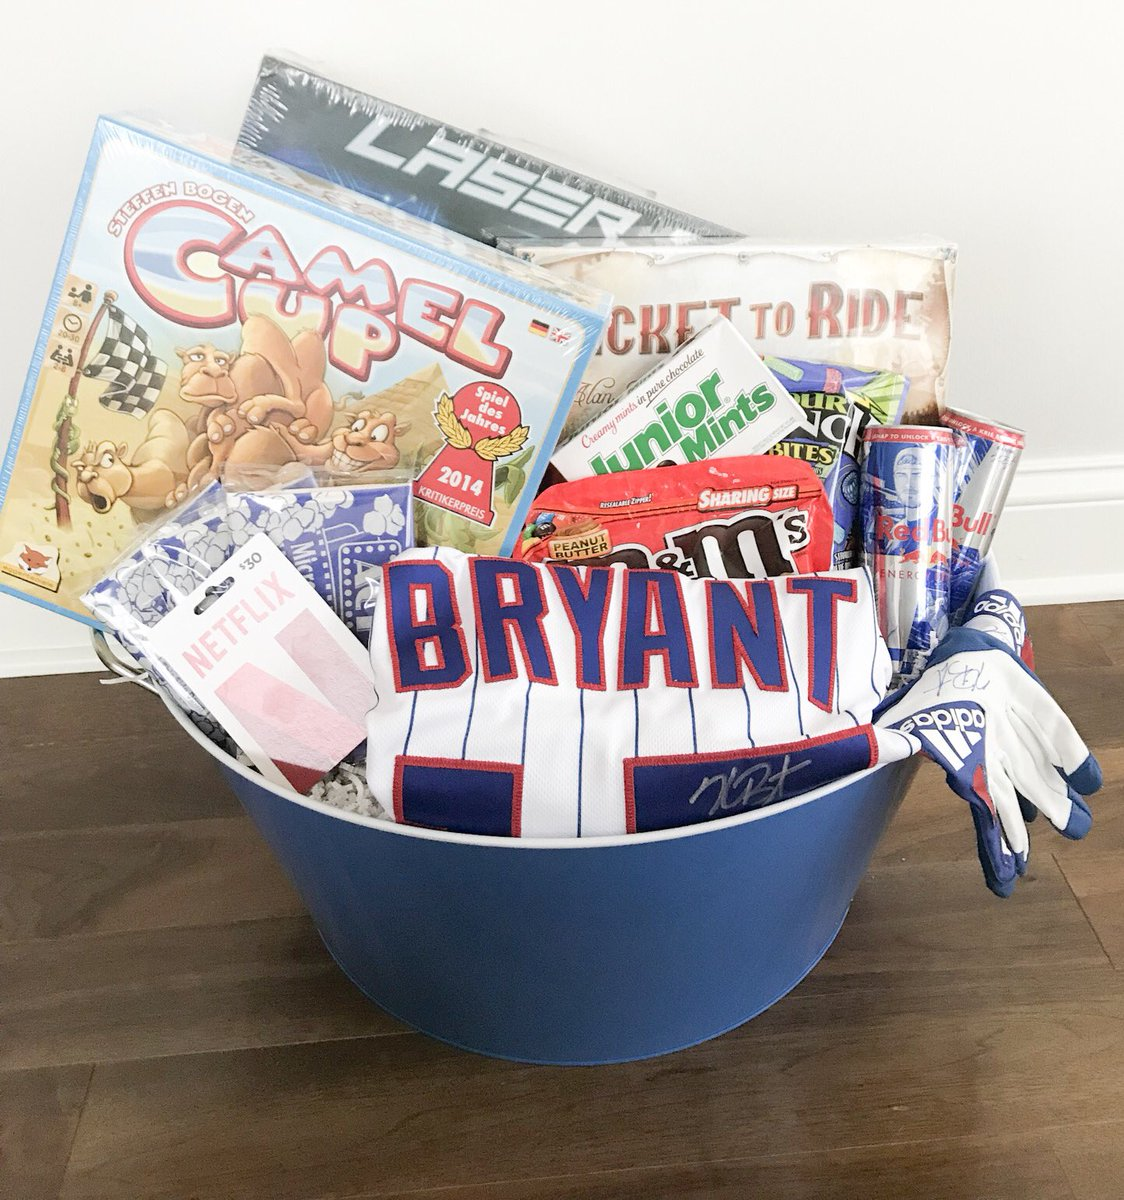 Time for the @Cubs favorite things baskets!! Here's a sneak peak into @KrisBryant_23 game night theme basket I put together! Come say hi, check them all out ...